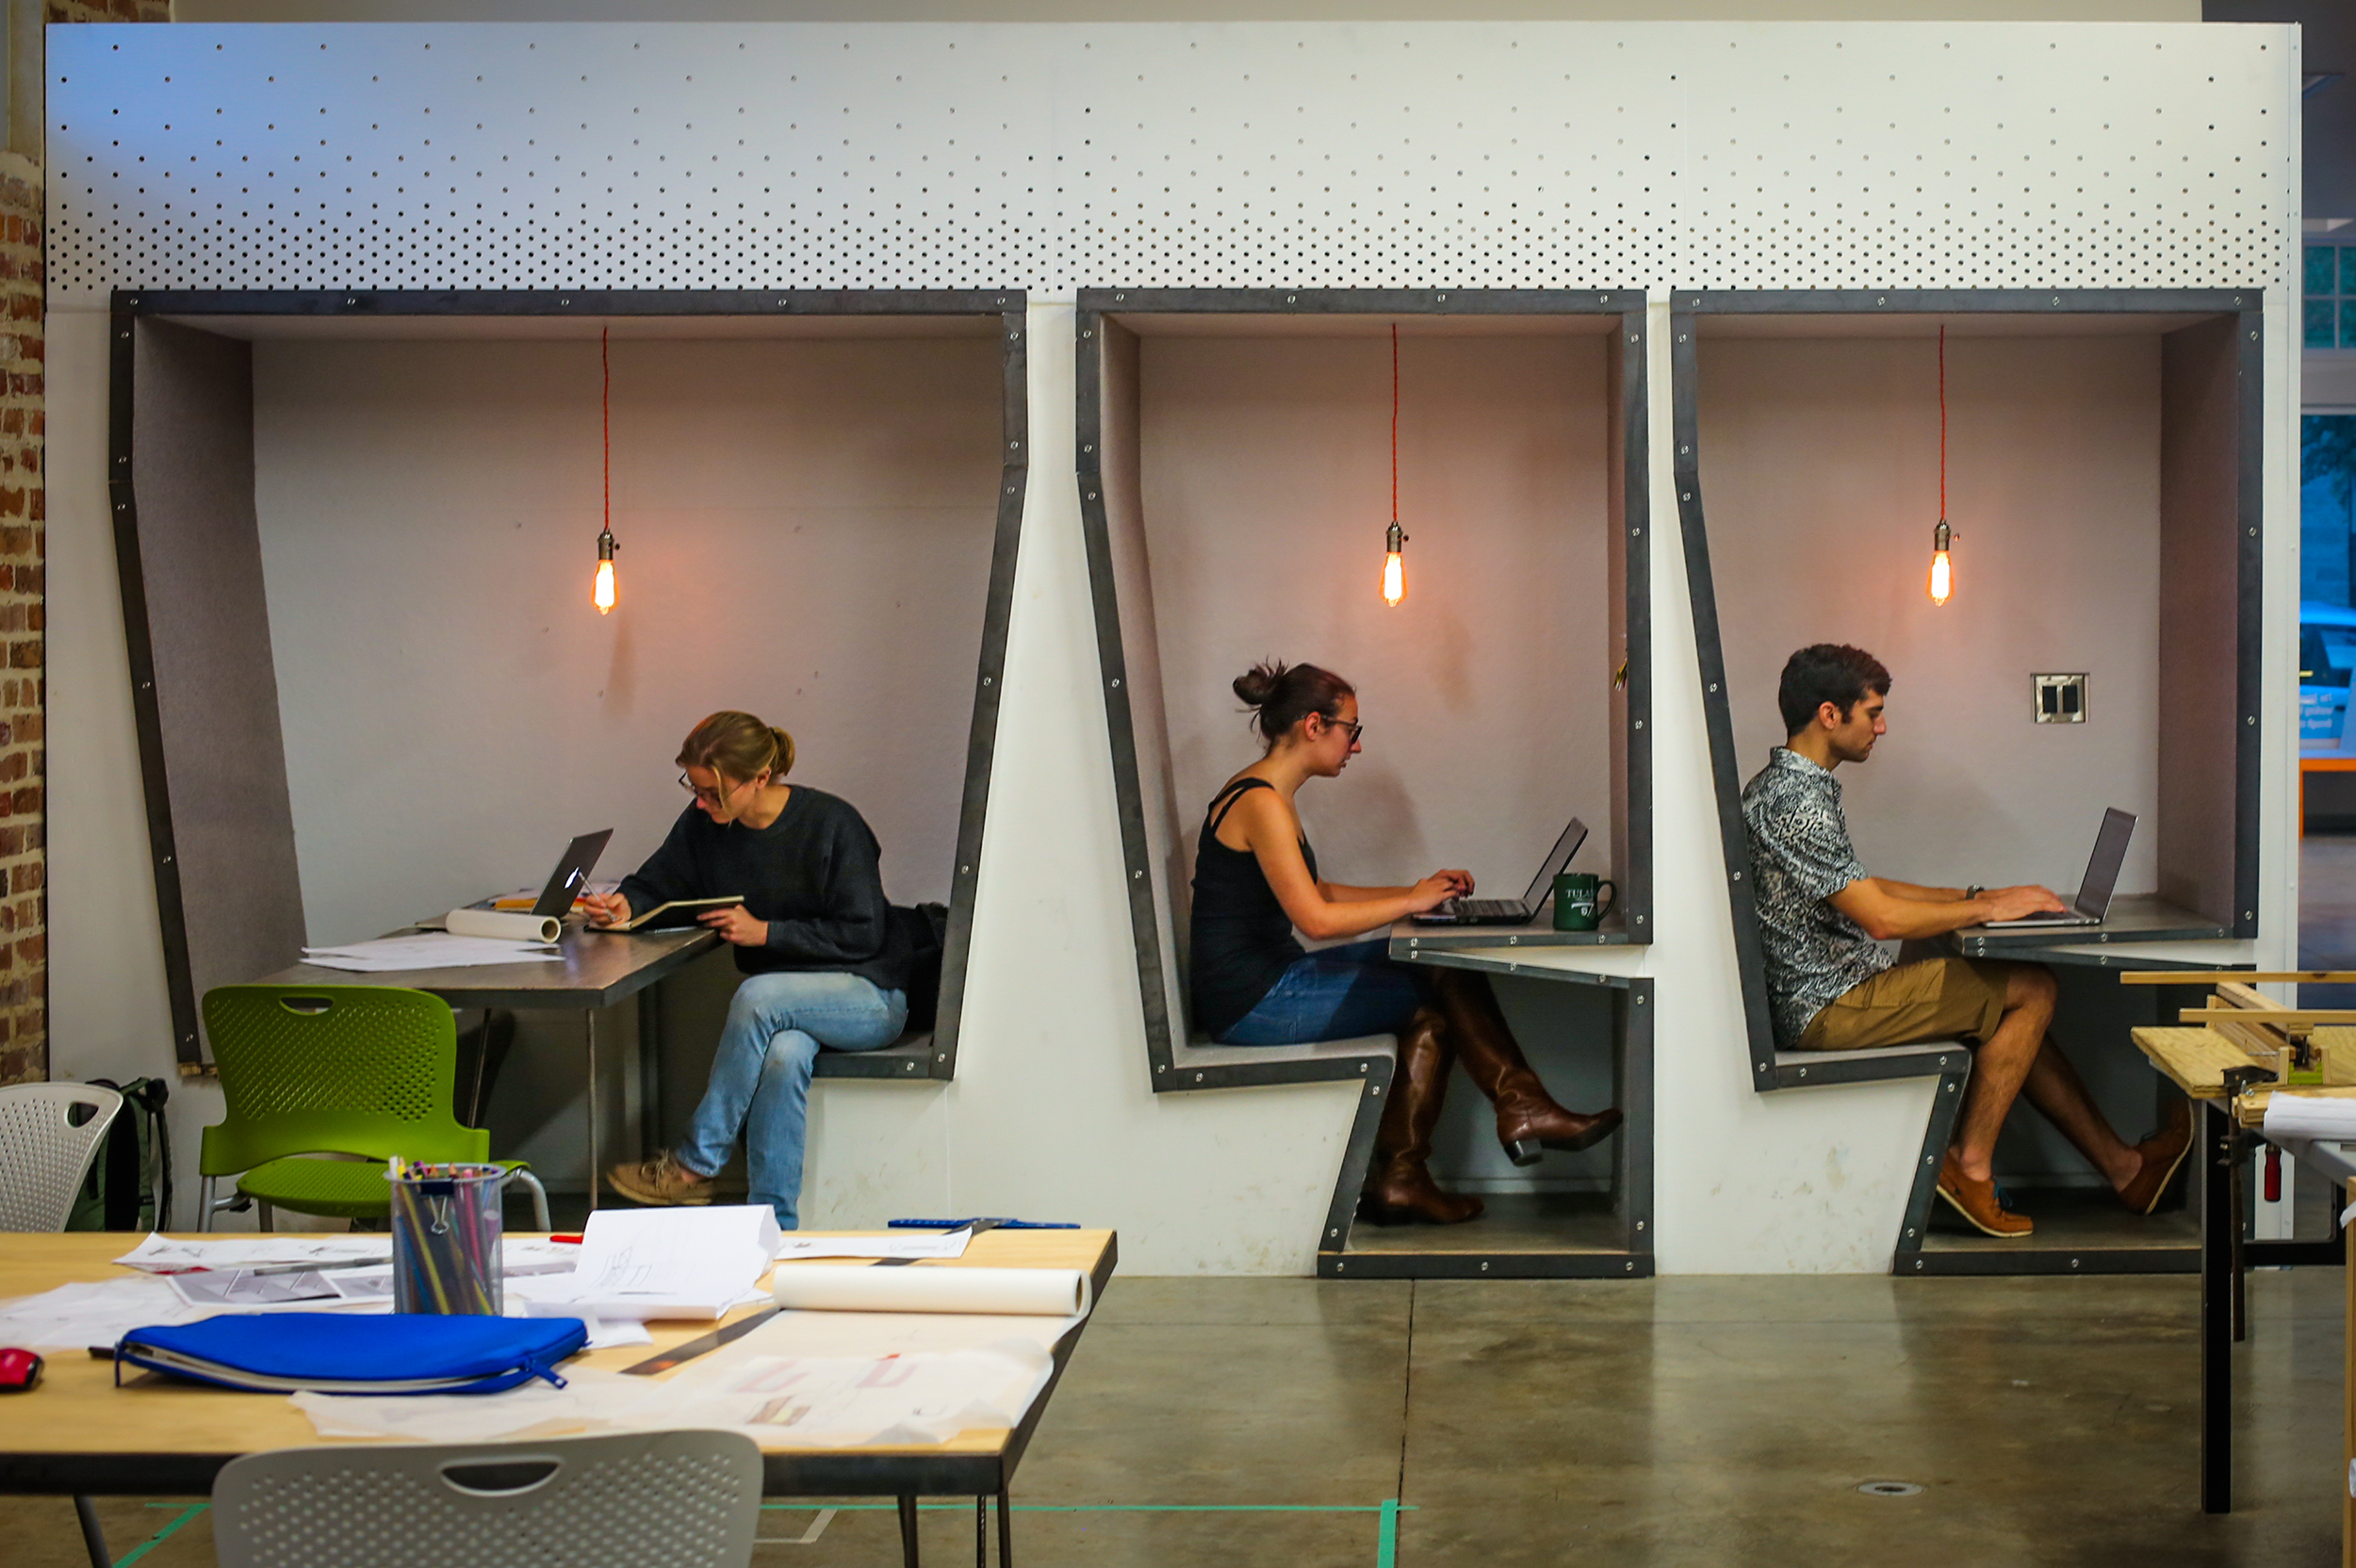 Three students studying in three booths.